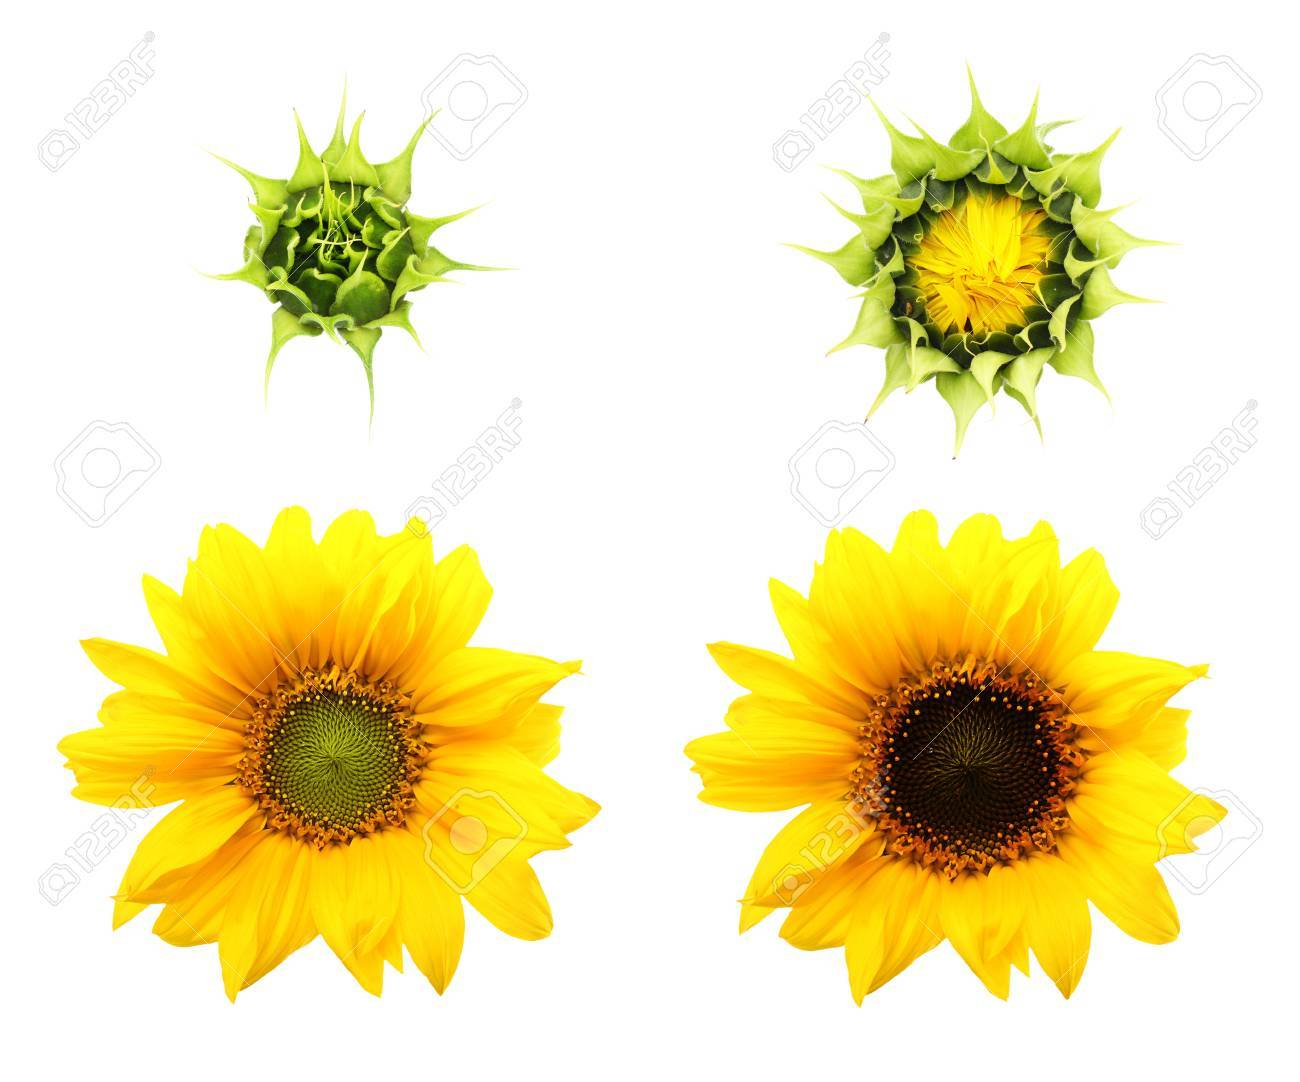 Sunflower Plant Isolated On White Background Stages Of Growth Stock Photo Picture And Royalty Free Image Image 32040389